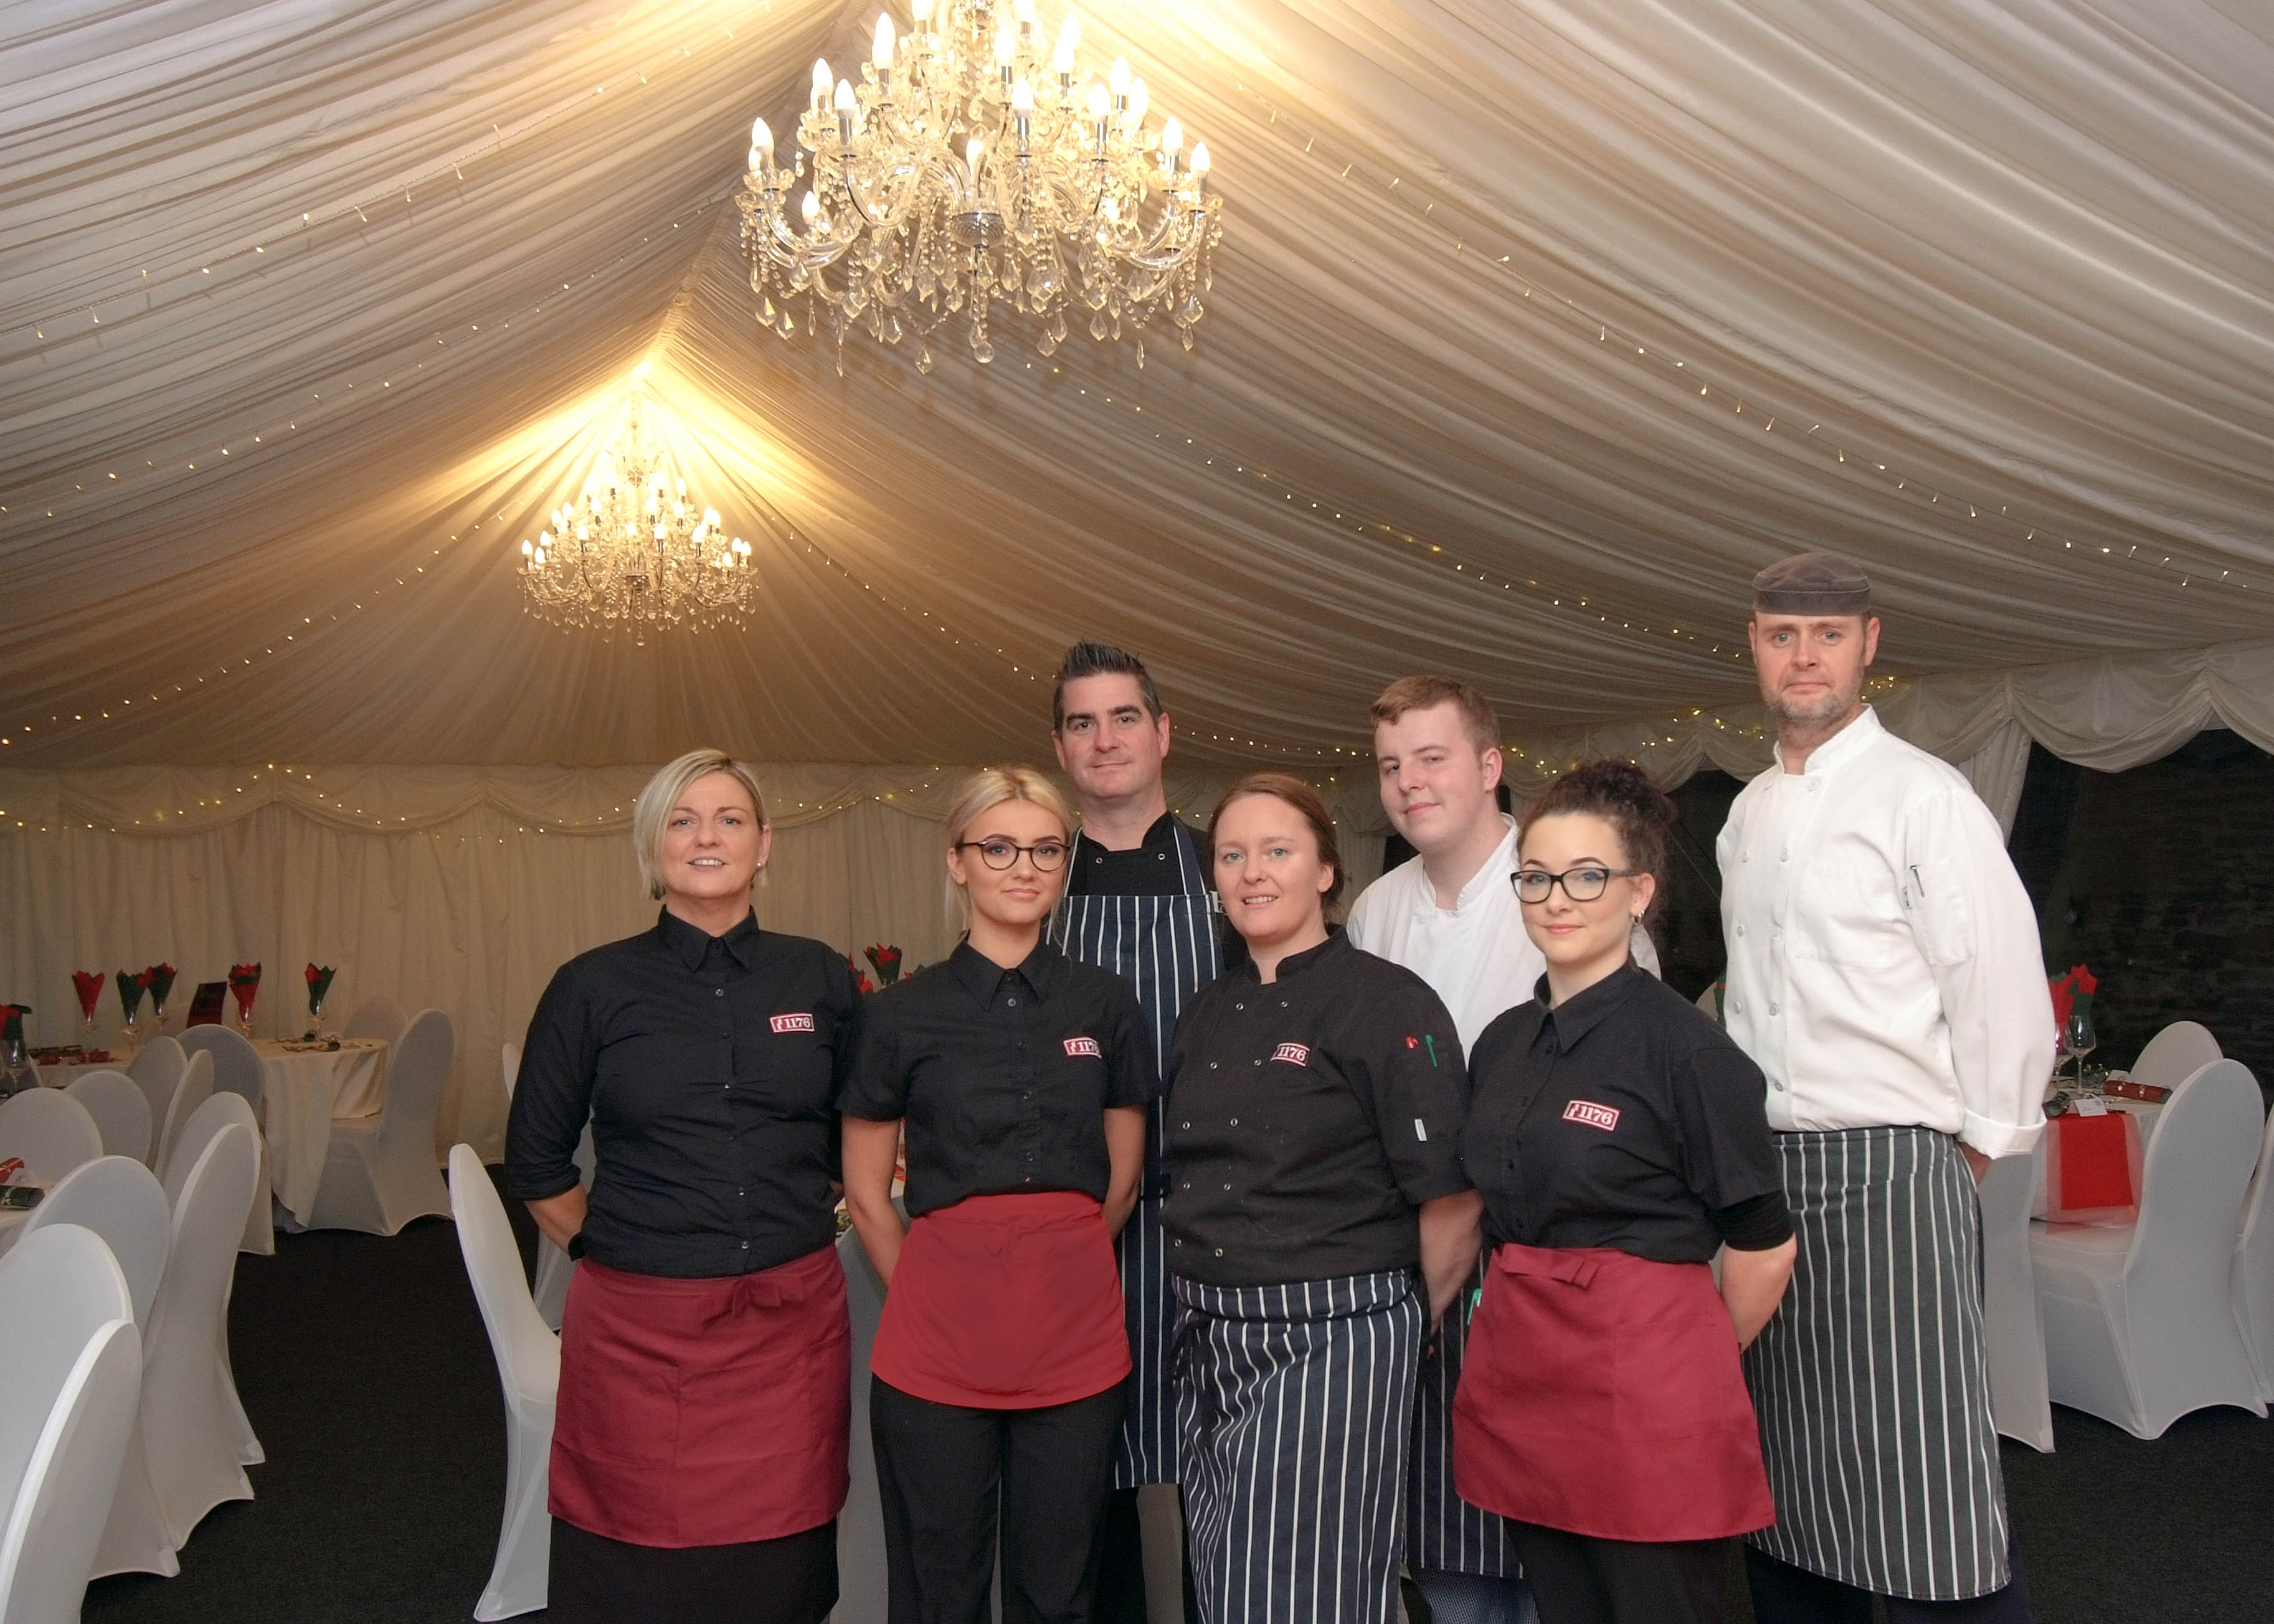 Some of our catering staff at an event at Cardigan Castle